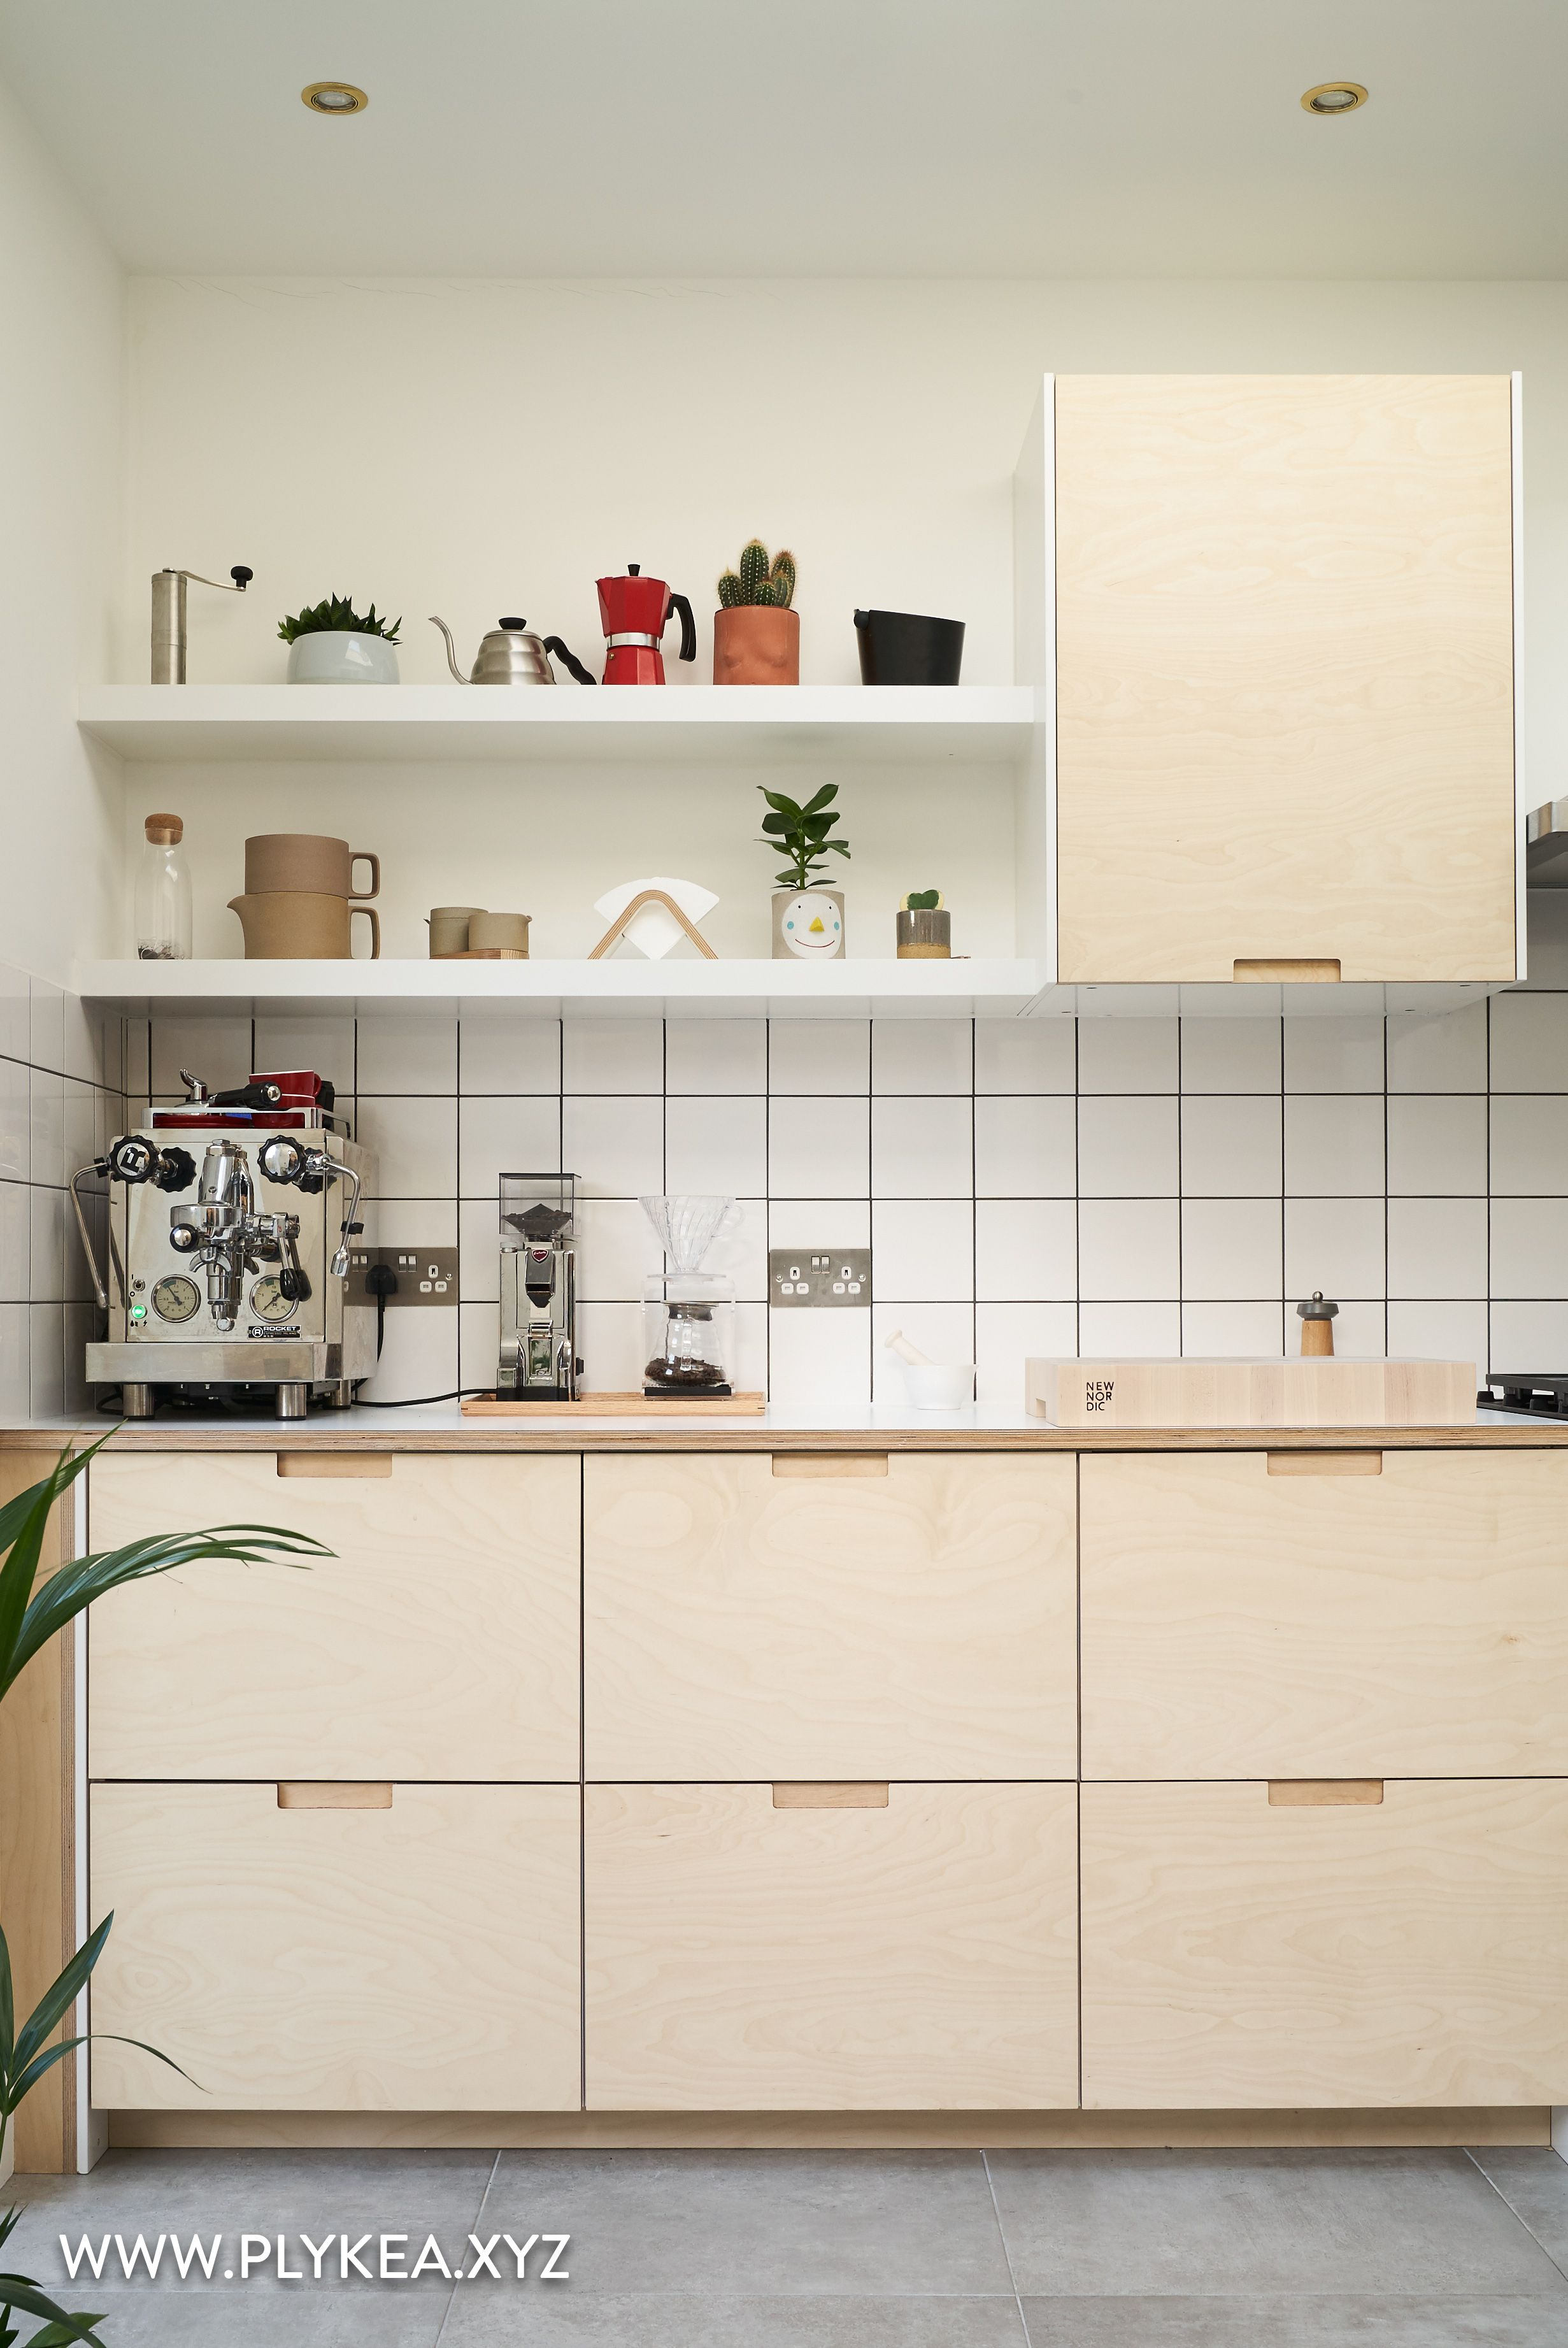 Thi kitchen features birch plywood fronts with our semi